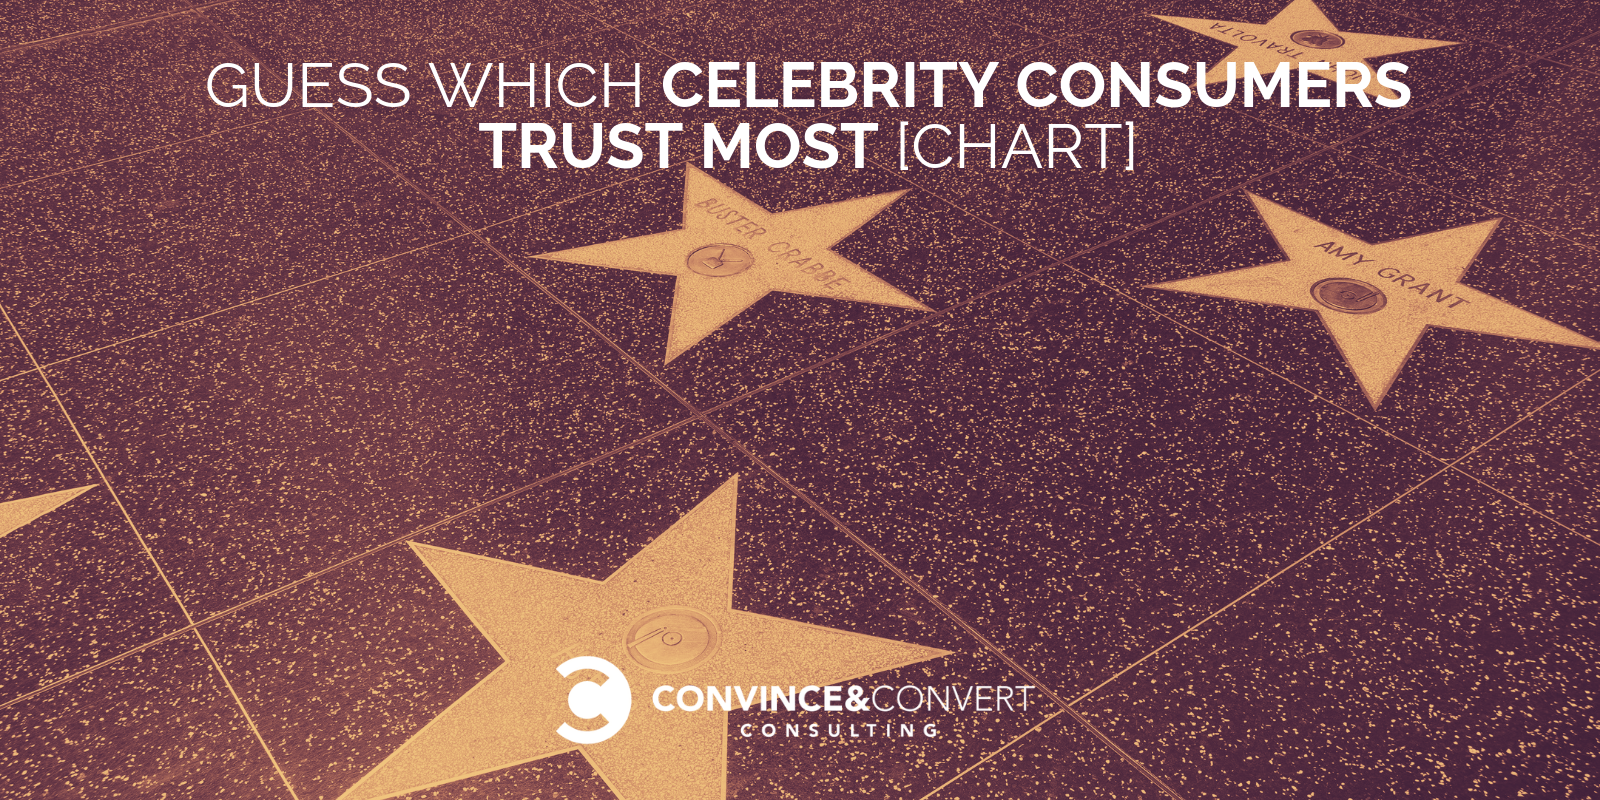 celebrity consumers trust most